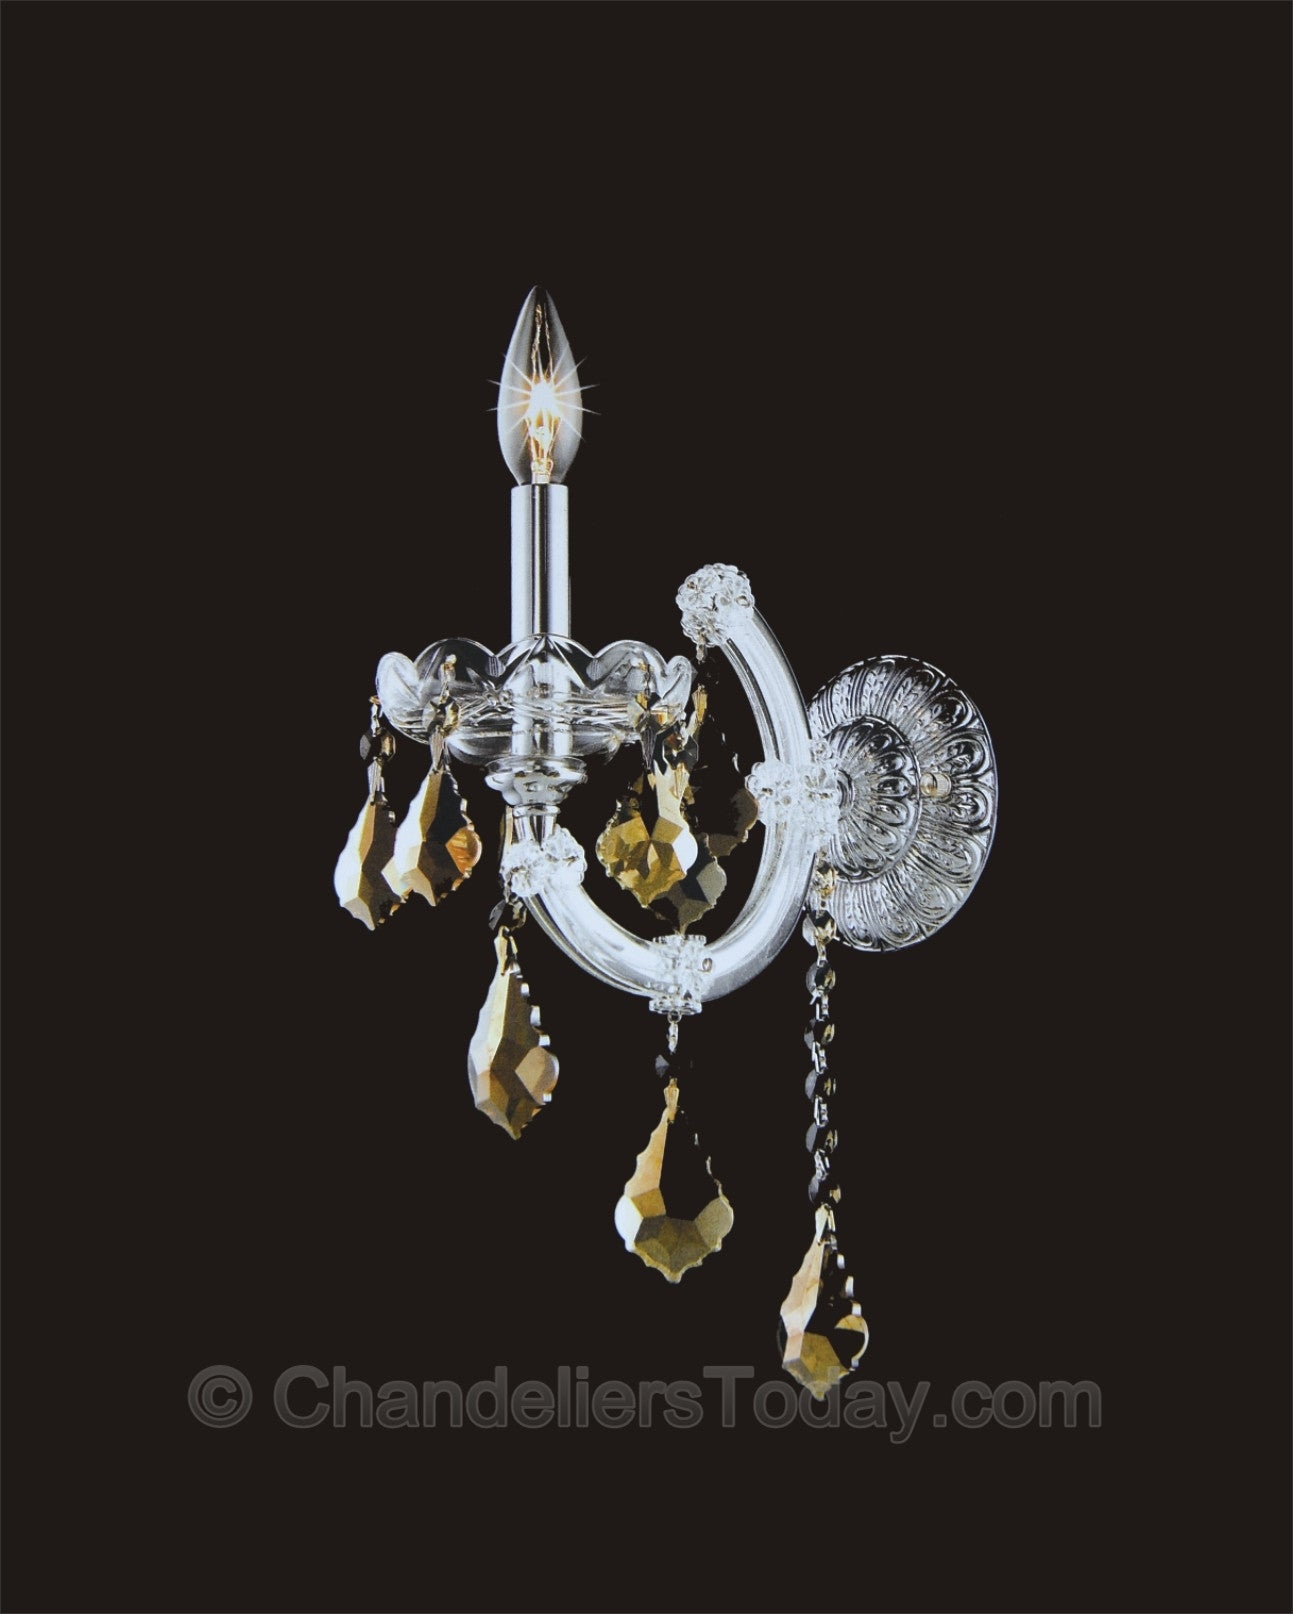 Maria Theresa Wall Sconce #4004-H 1-Light